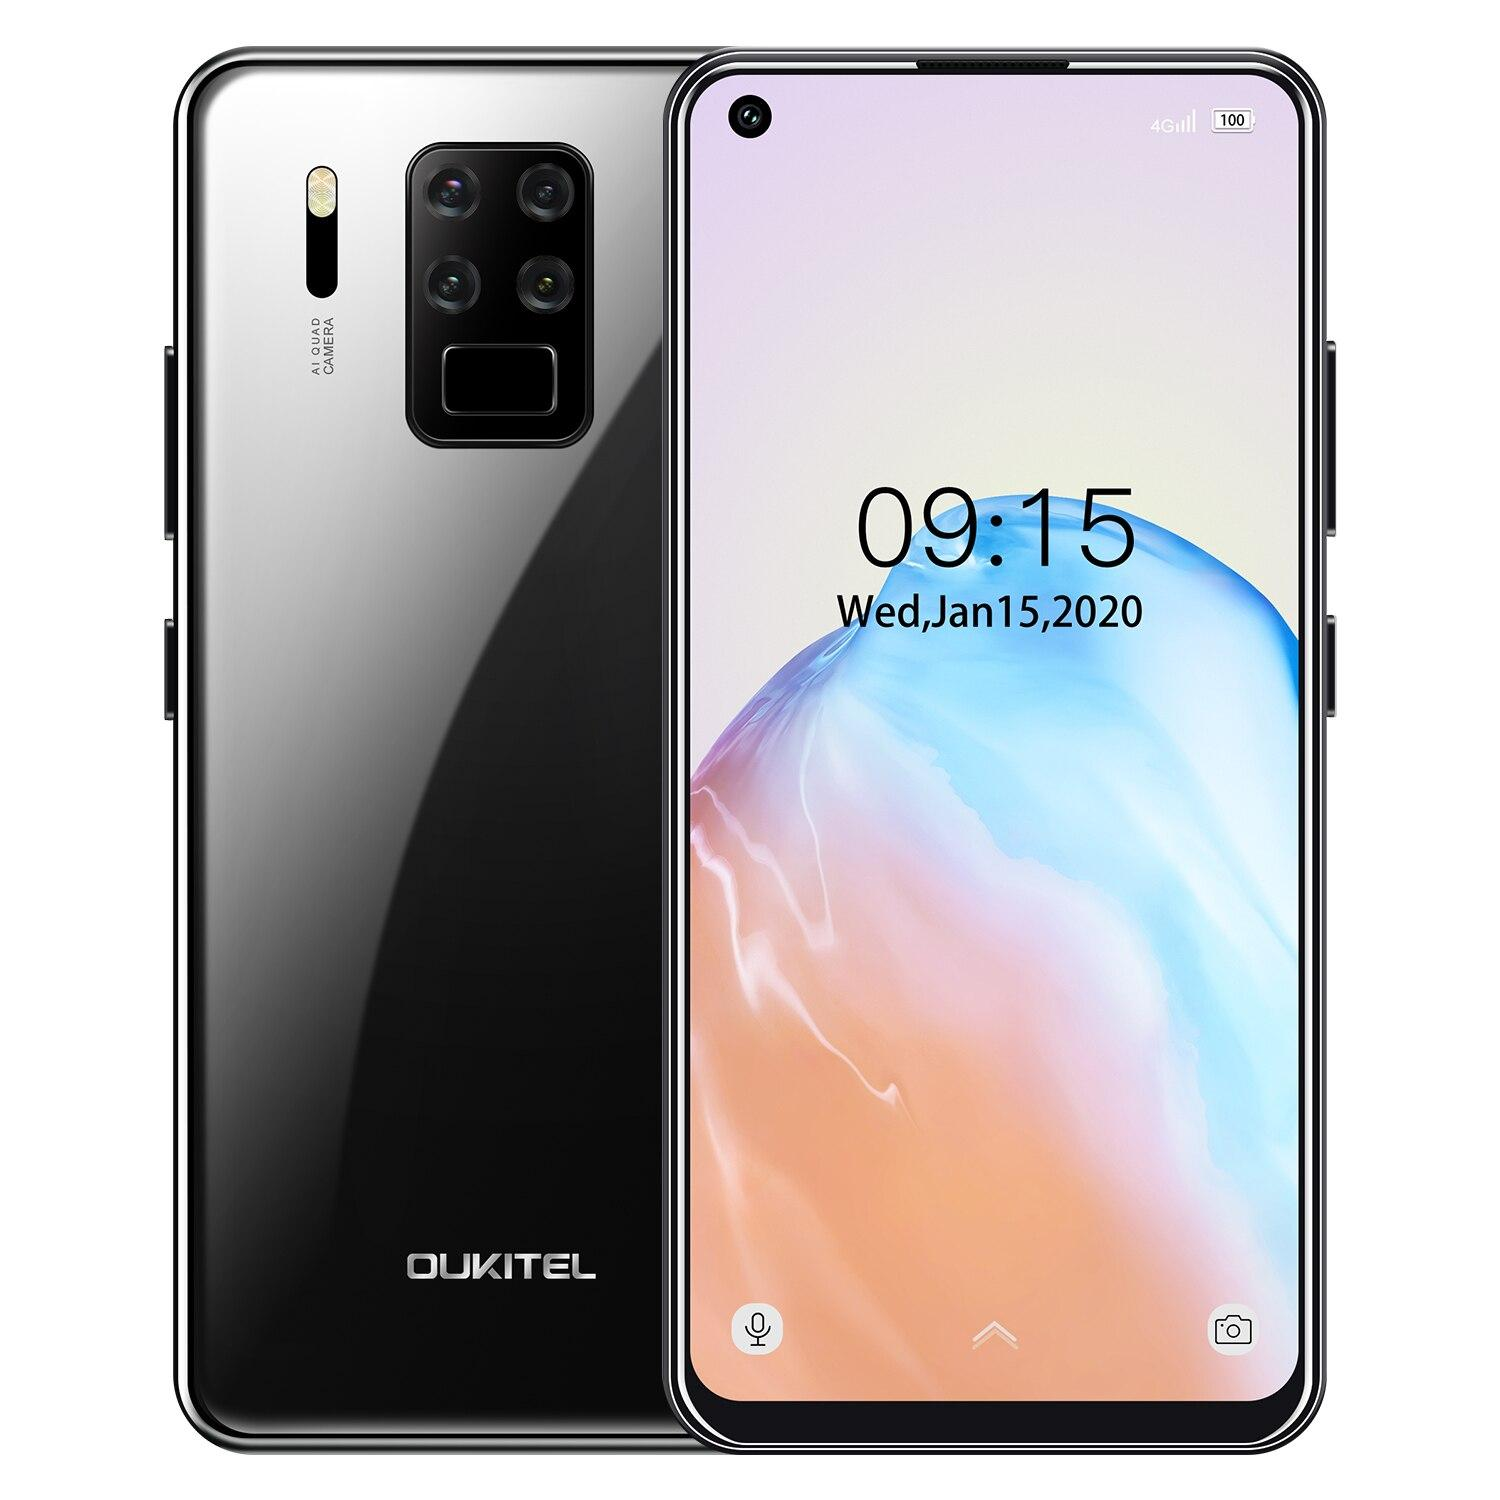 "OUKITEL C18 Pro 4G RAM 64G ROM 4G LTE Smartphone 6.55""HD Android 9.0 MTK6757 Octa Core 16MP 4 Cameras 4000mAh 5V2A Mobile Phone"